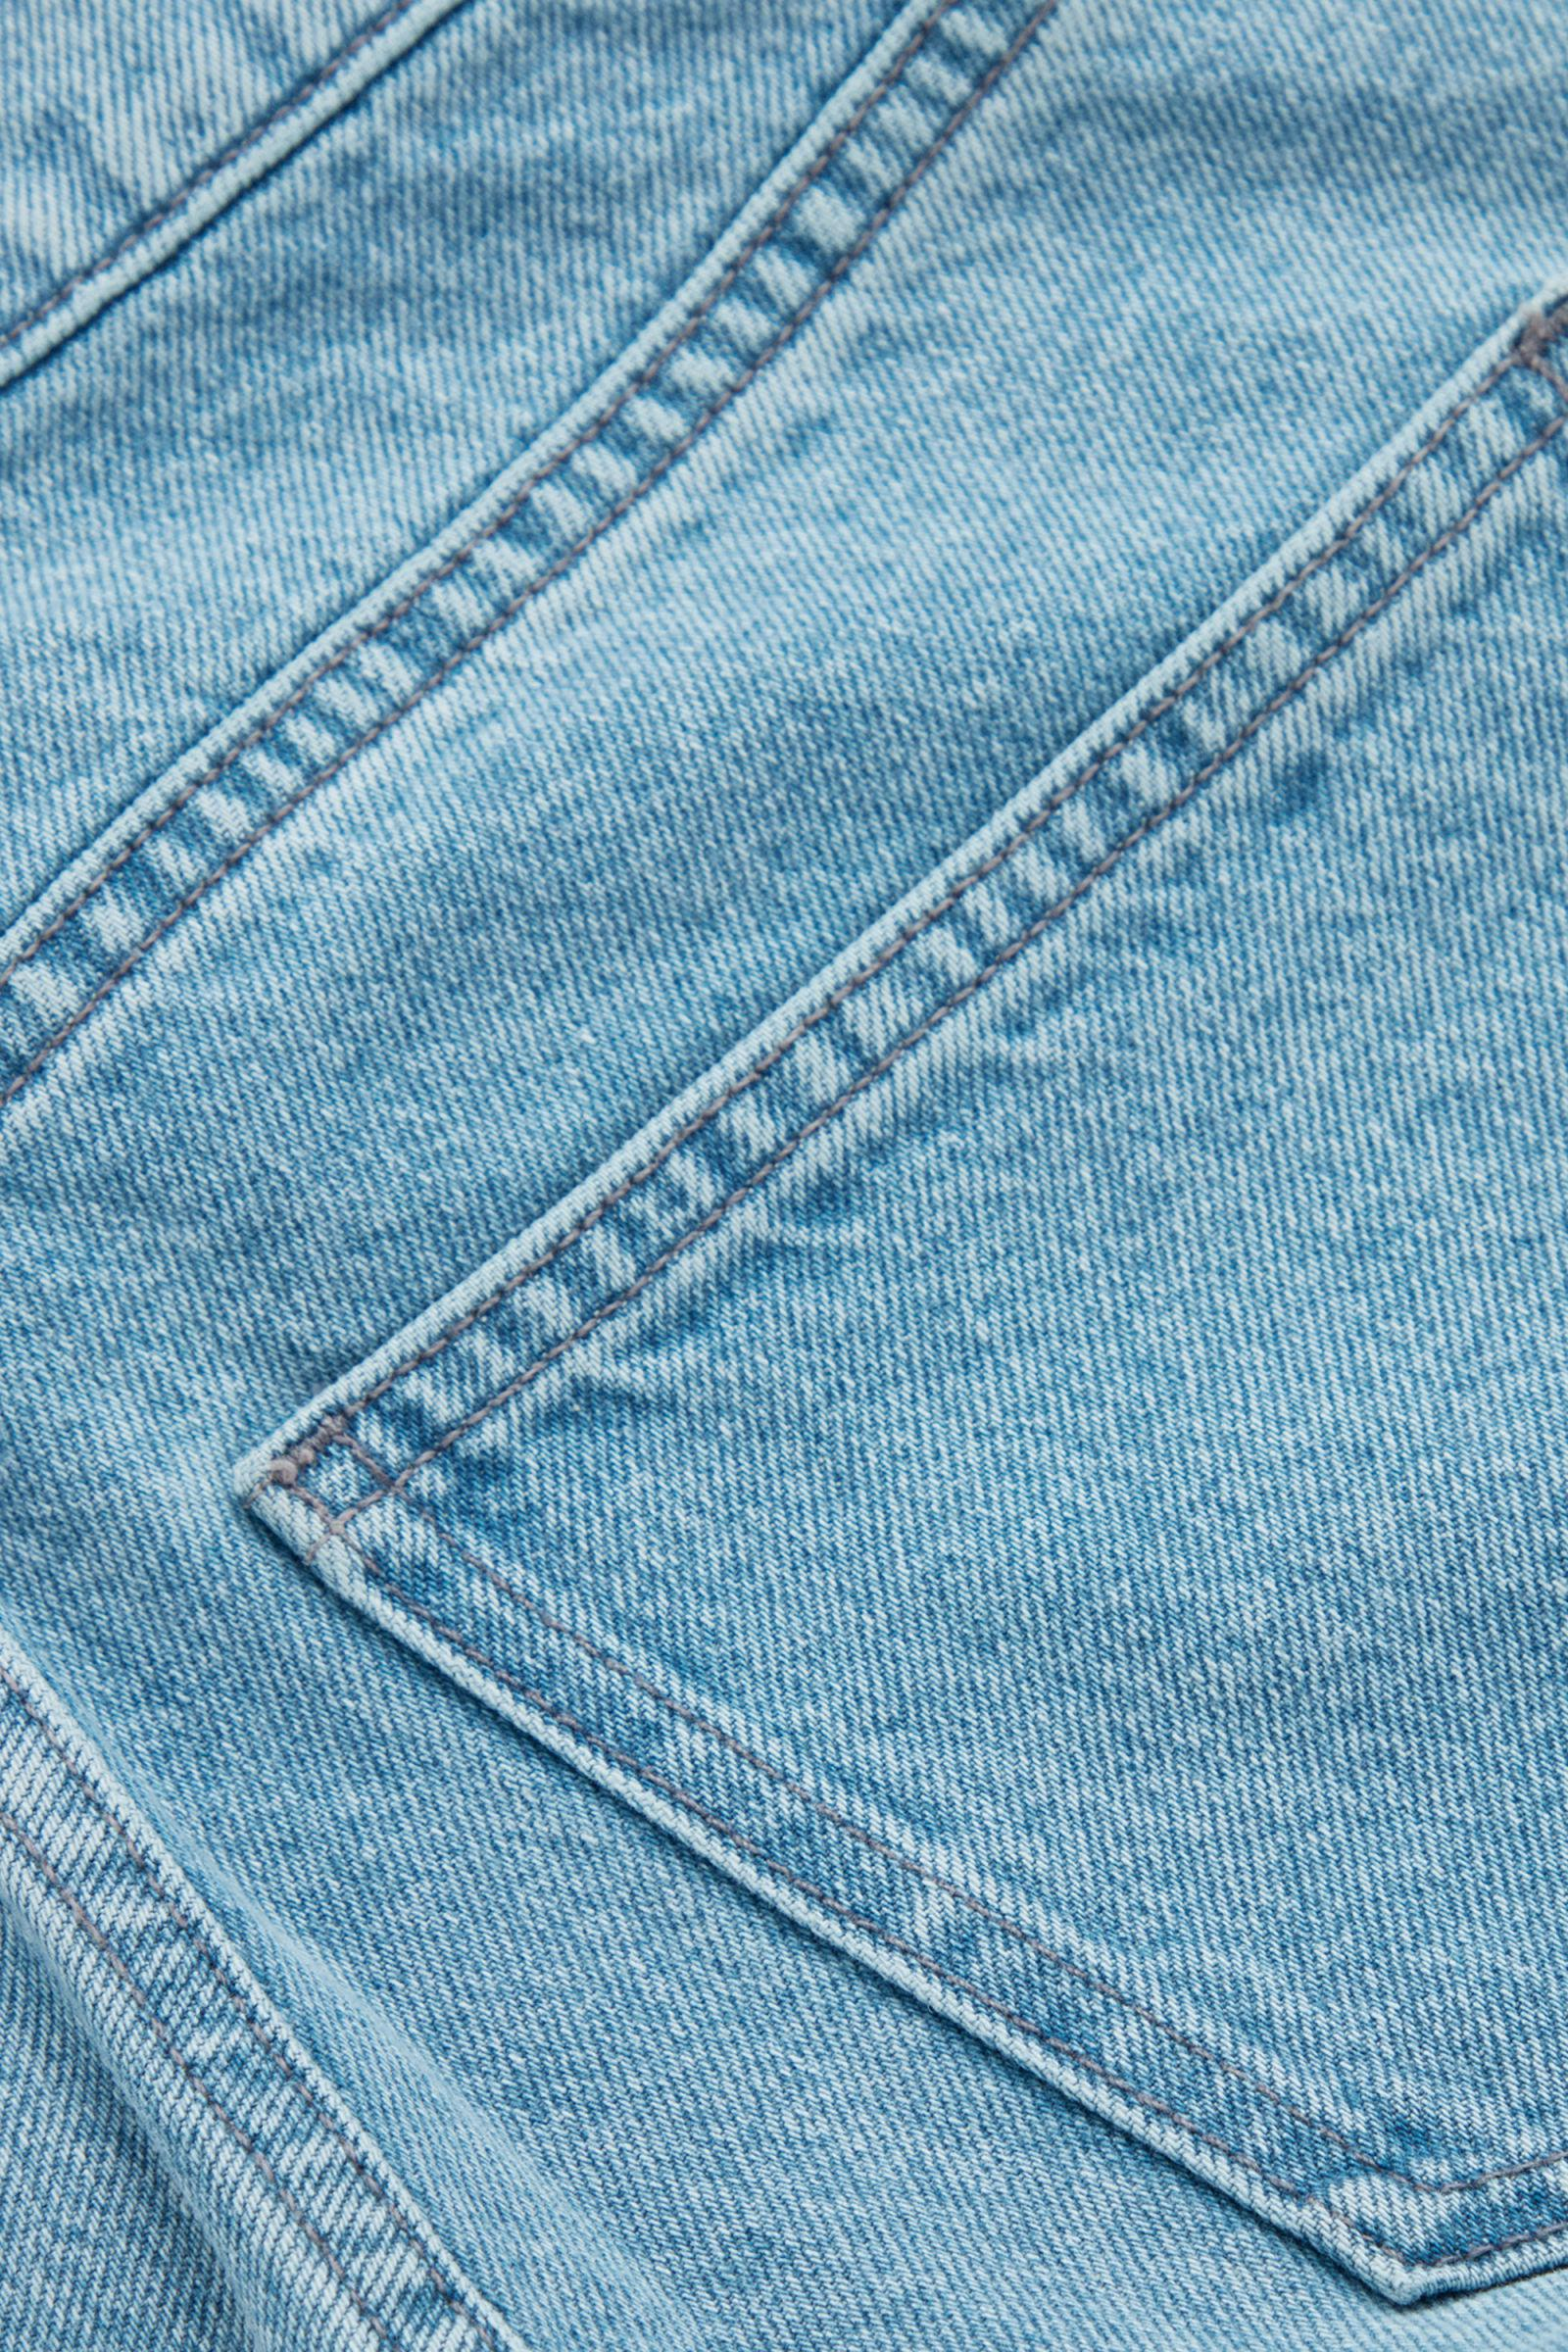 CROPPED STRAIGHT JEANS 7